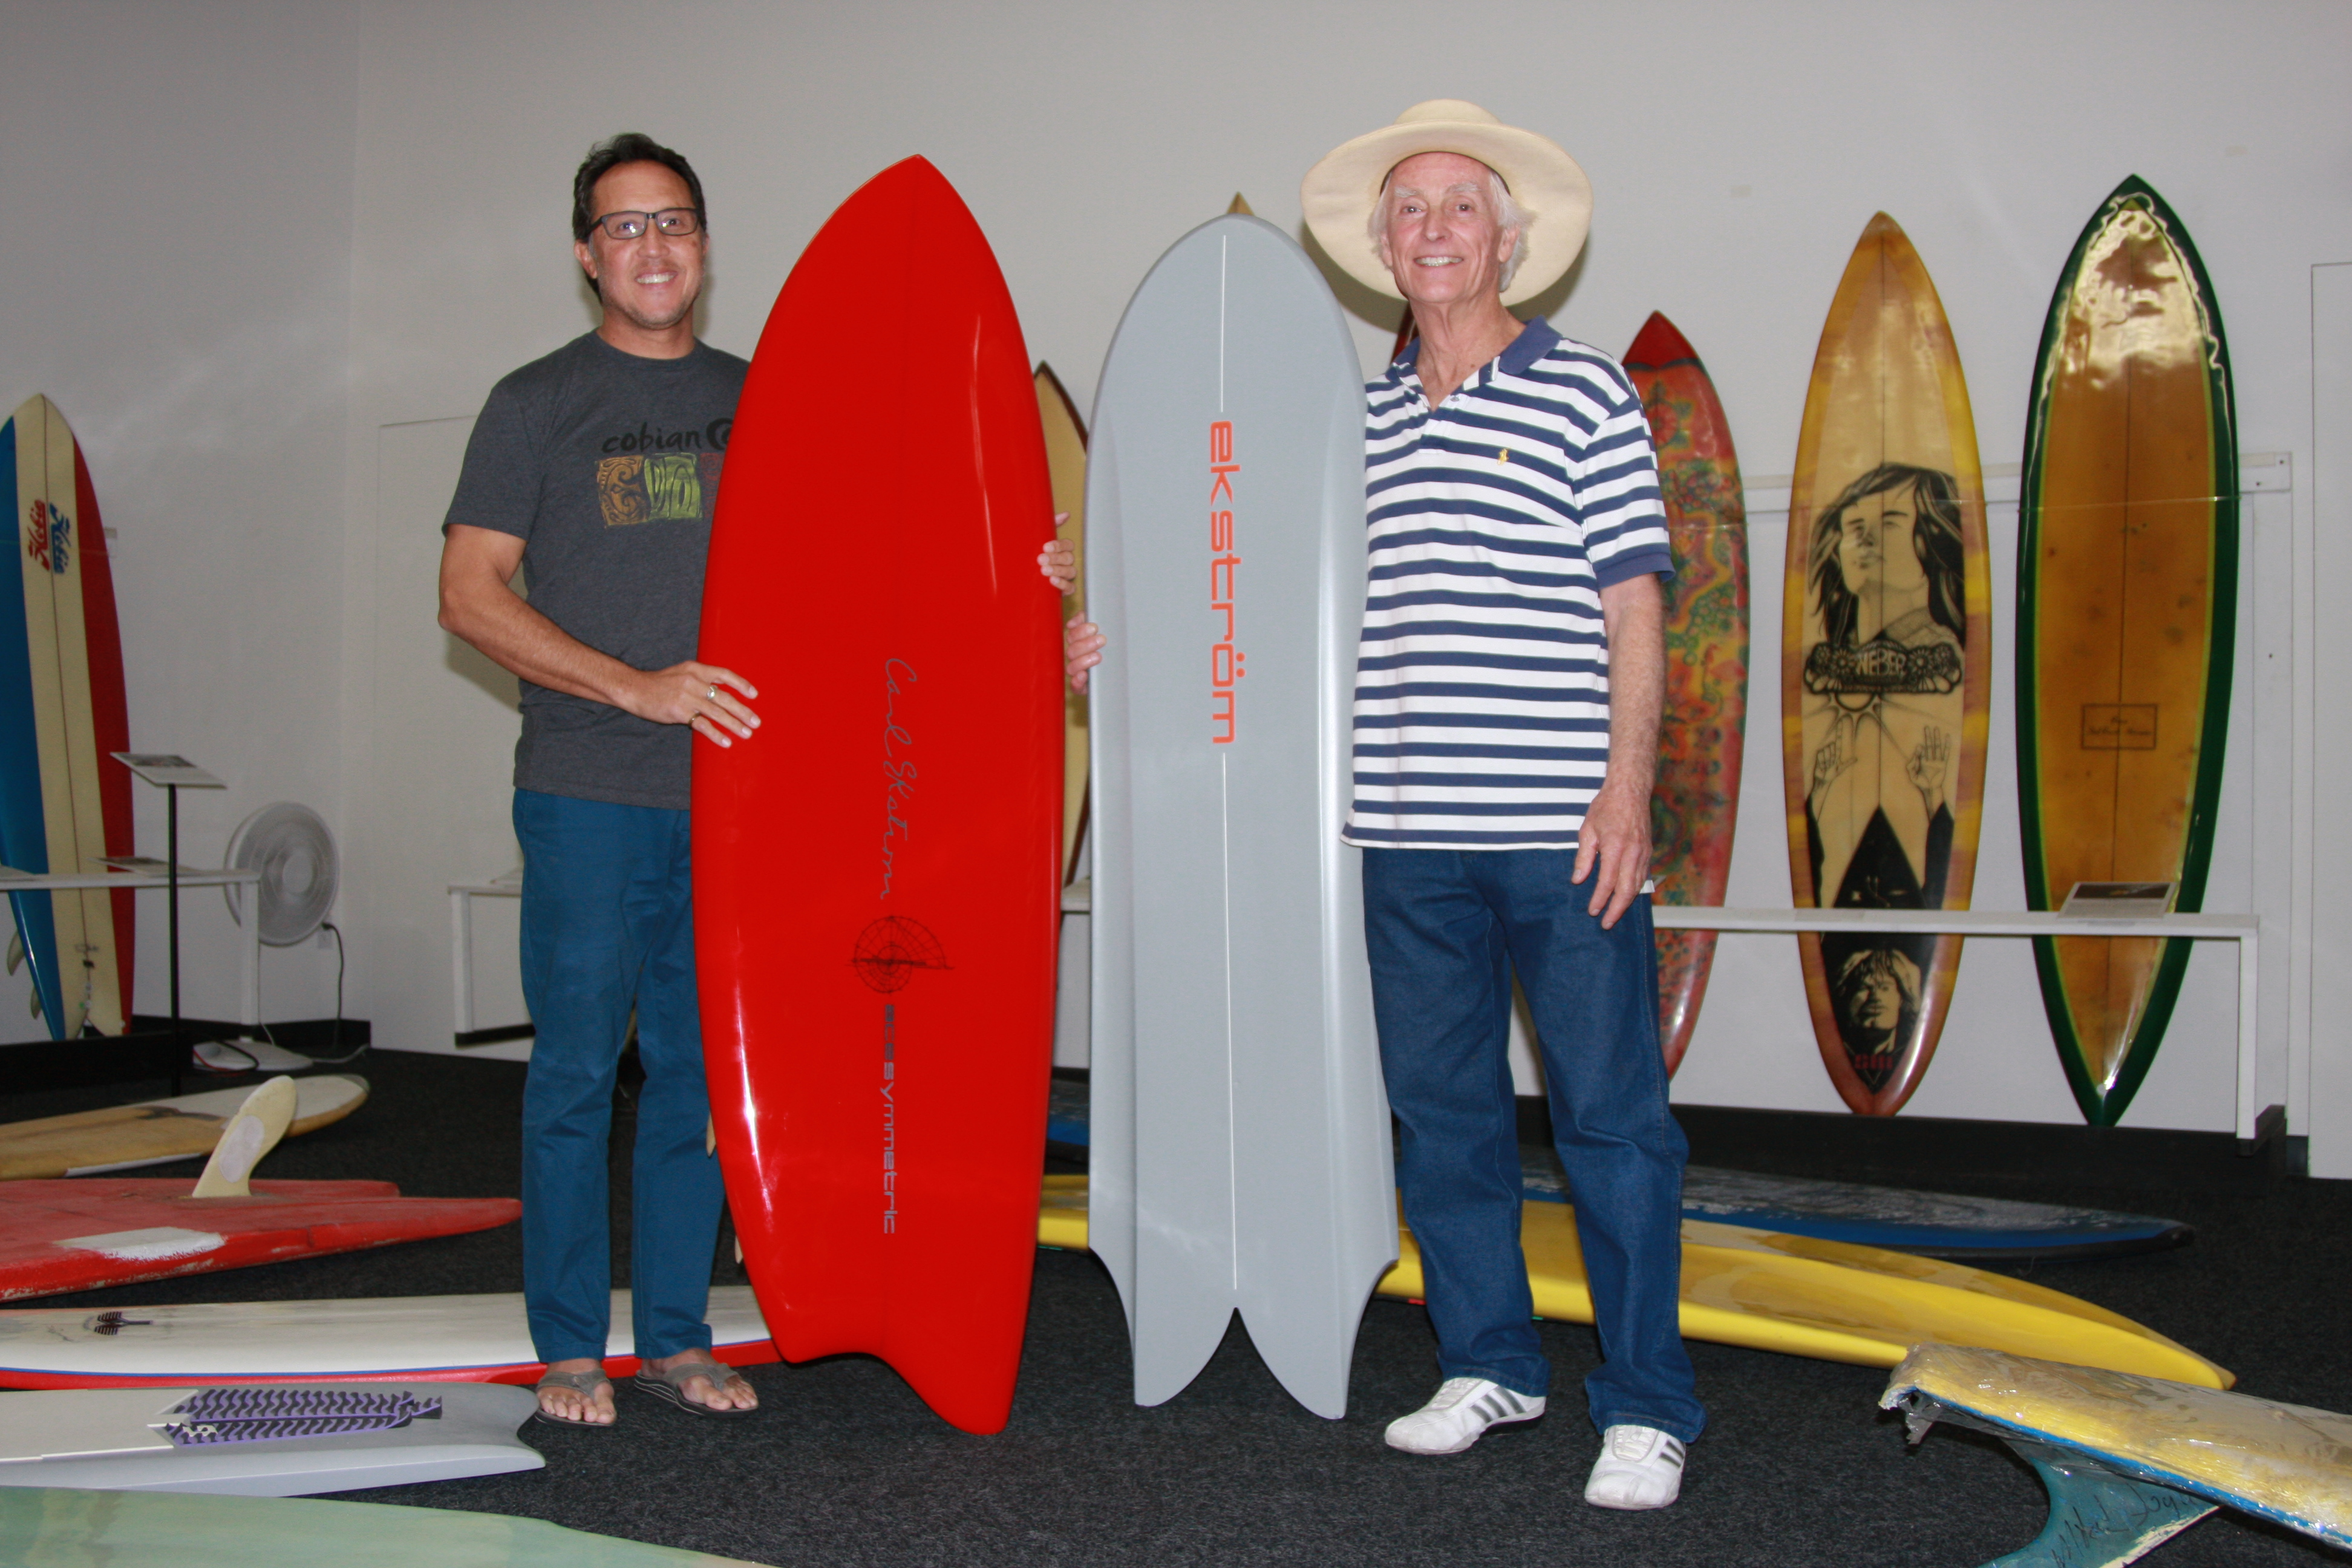 Crystal Pier San Diego, Surfing Heritage and Culture Center| San Clemente Times